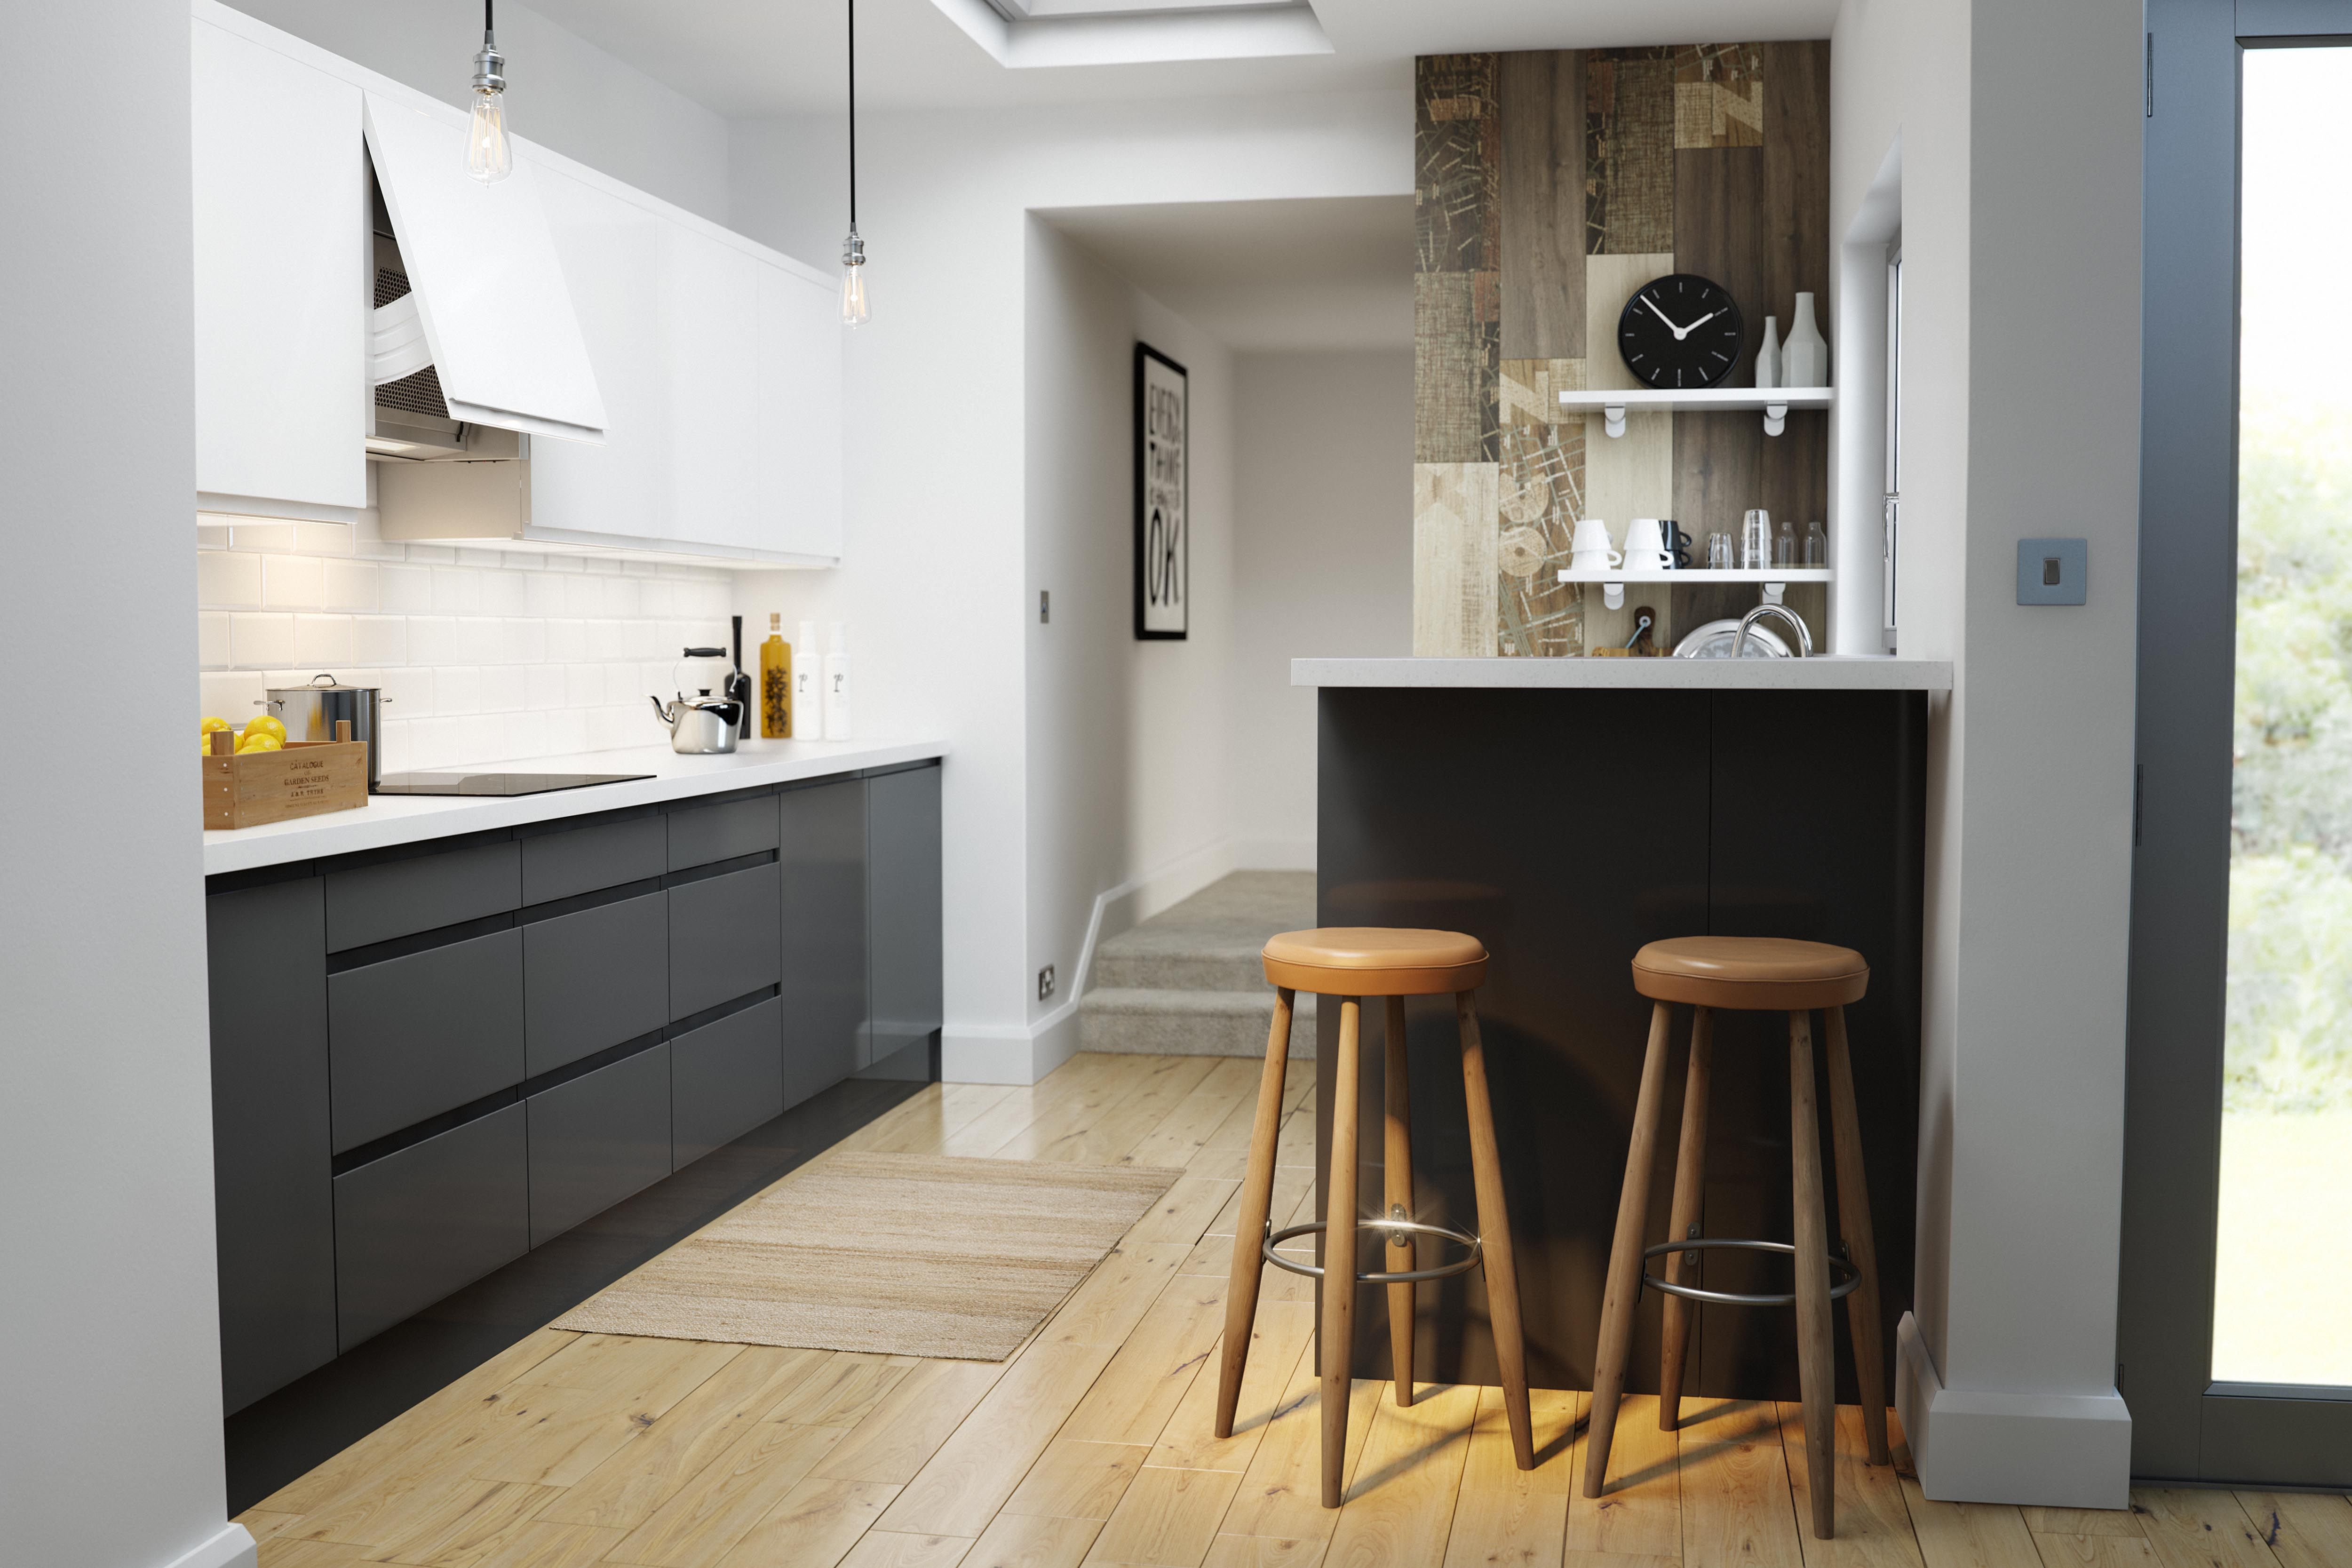 Wren Kitchens Handleless Charcoal Gloss You don't need